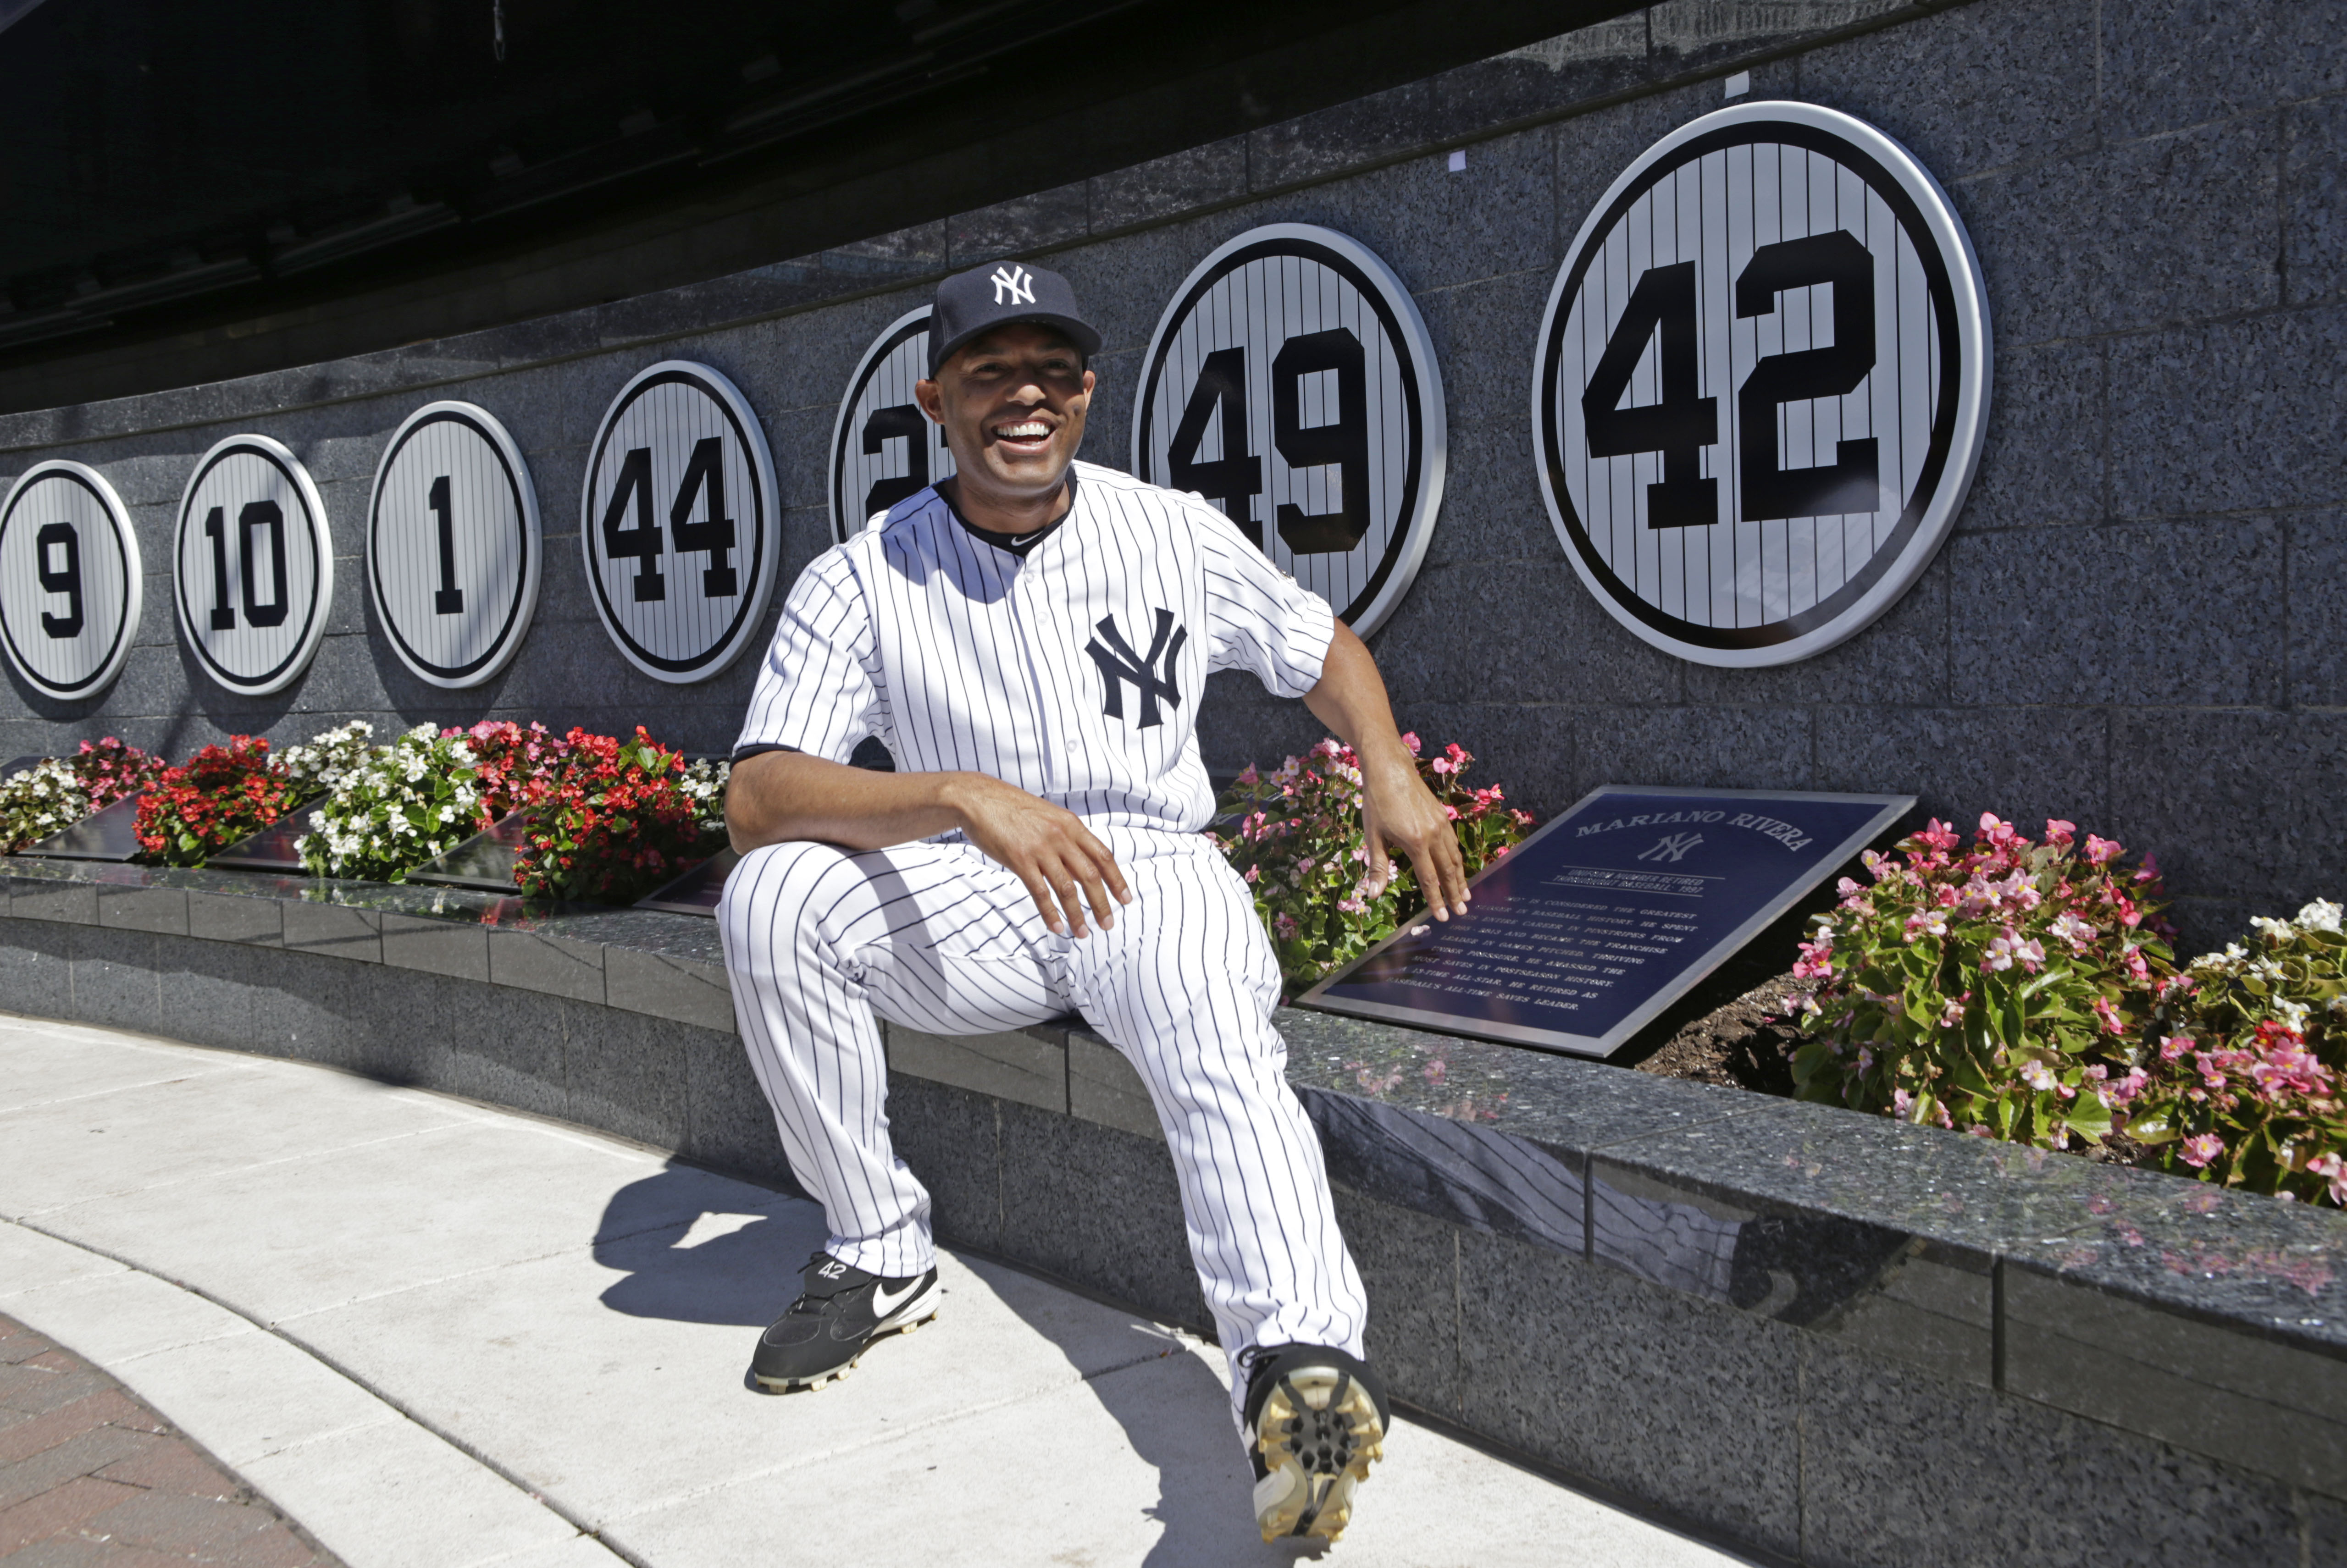 New York Yankees relief pitcher Mariano Rivera (42) sits beside his retired number in Monument Park during a pregame ceremony at Yankee Stadium before the Yankees baseball game against the San Francisco Giants, Sunday, Sept. 22, 2013, in New York. (AP Pho